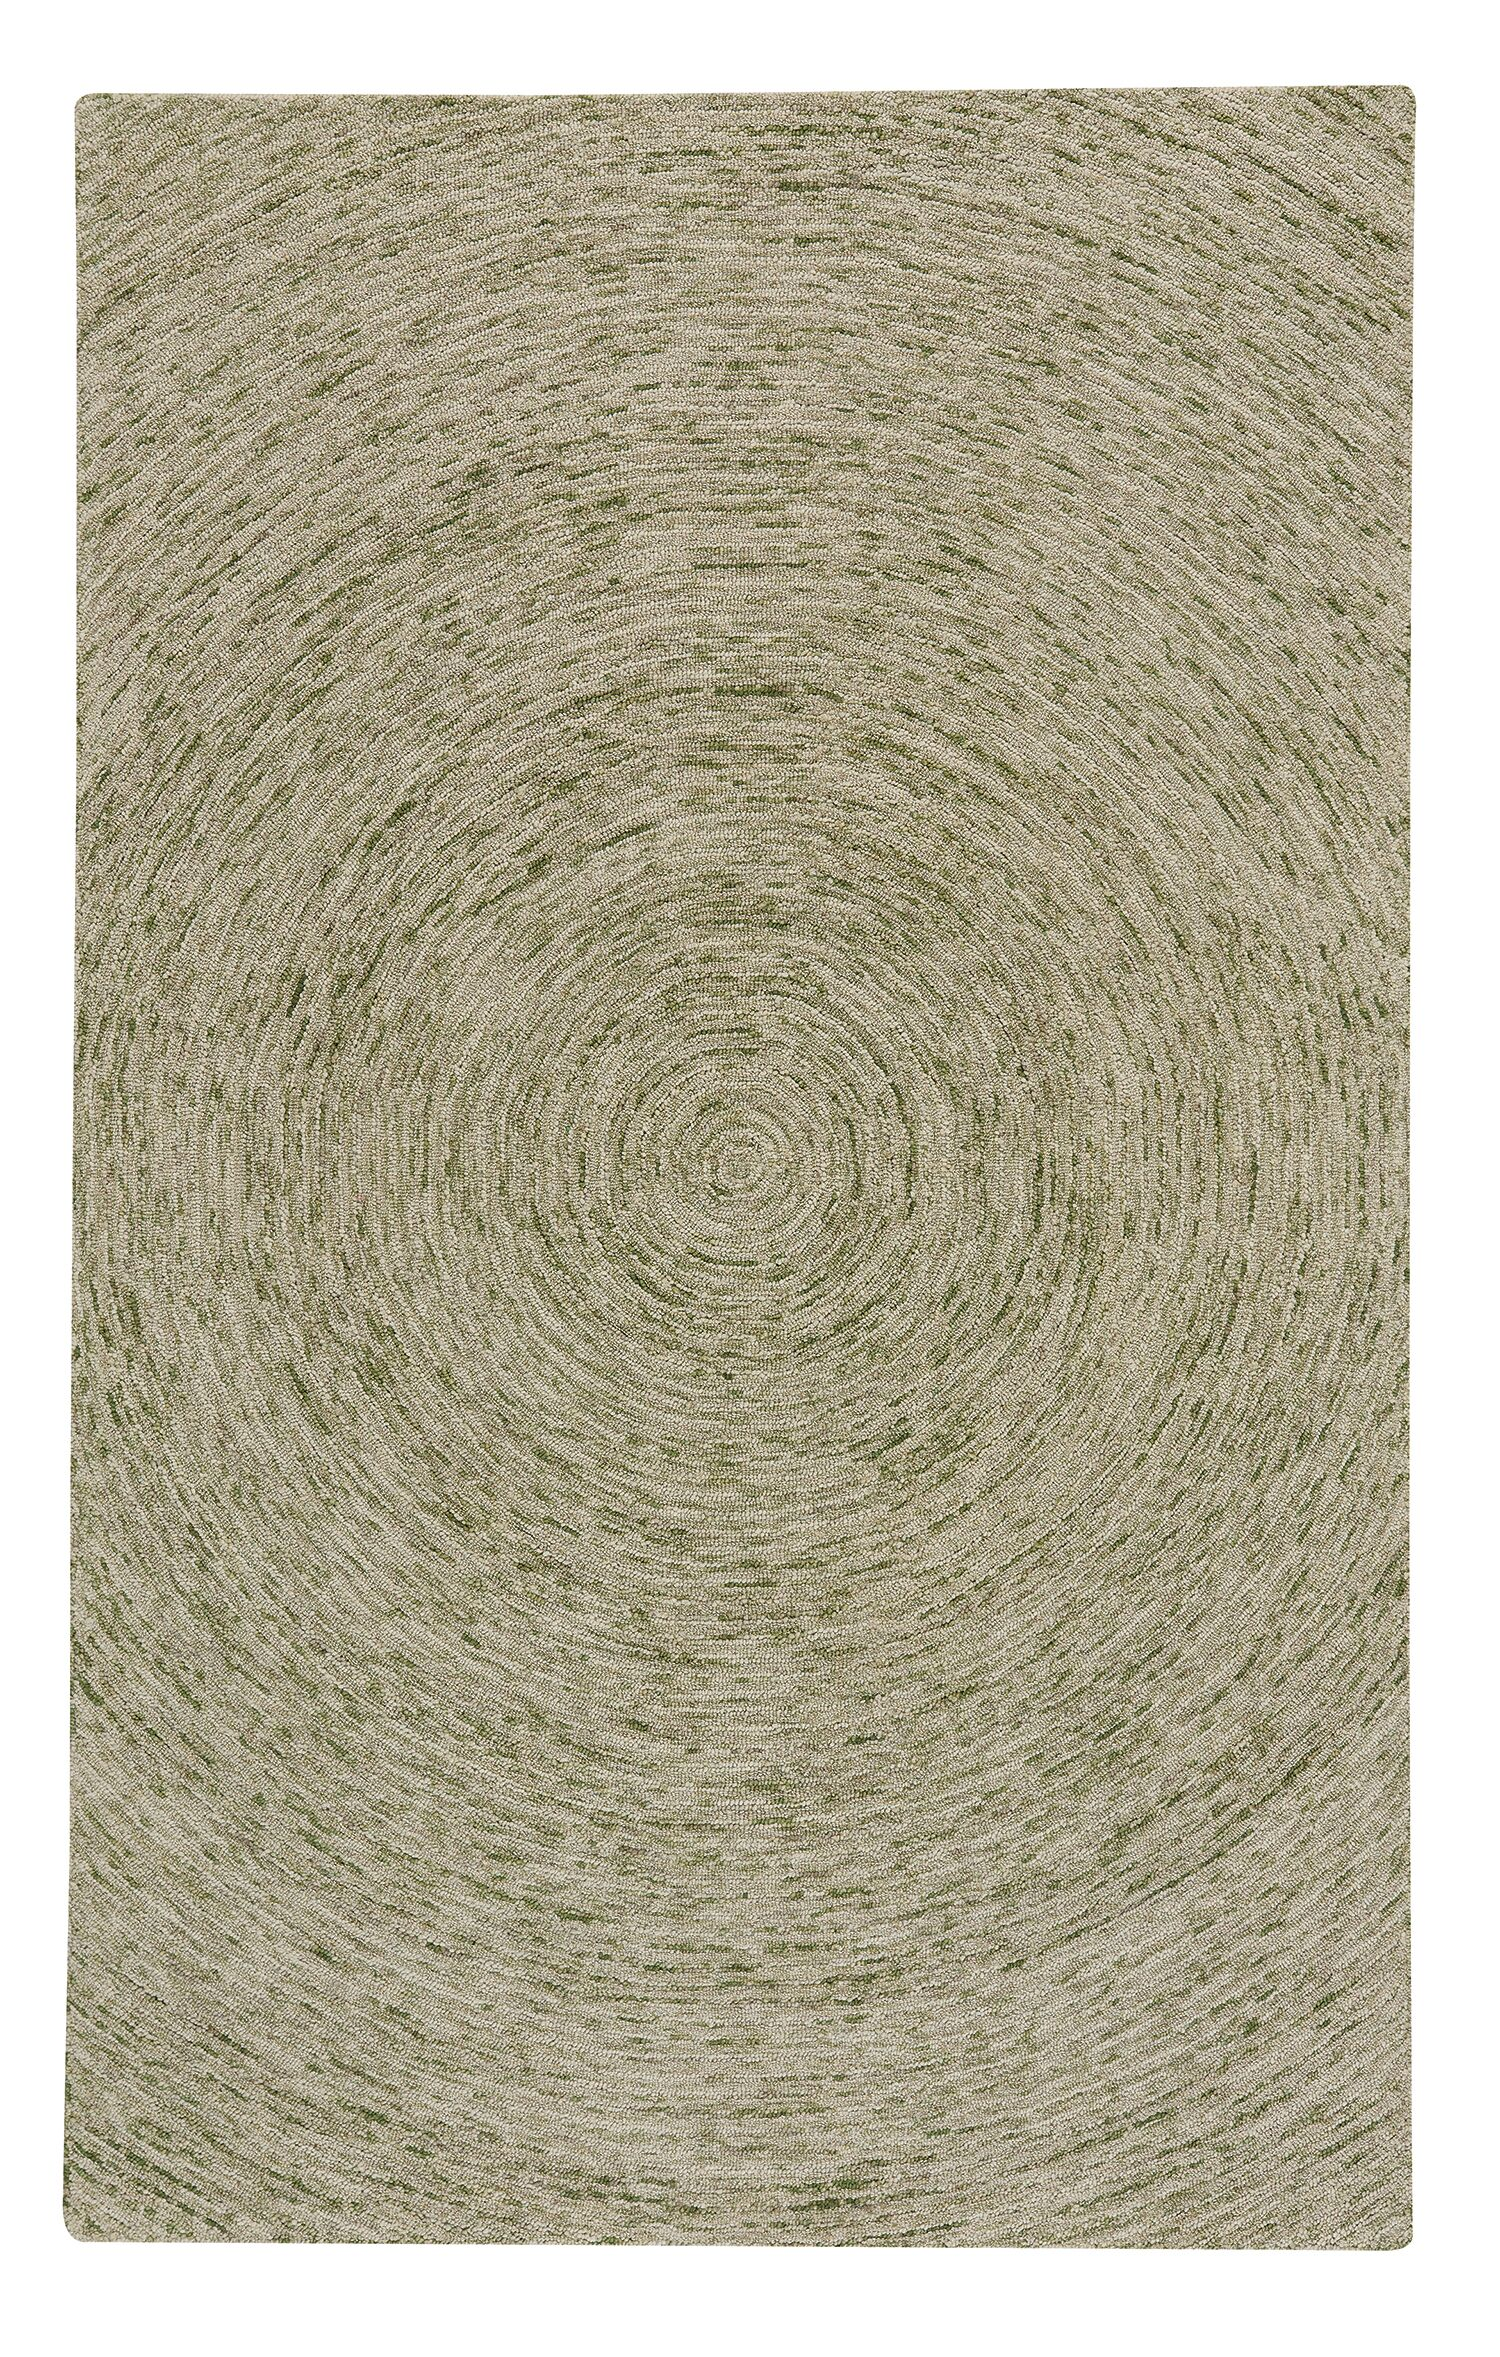 Eberlein Hand-Tufted Wool Beige Area Rug Rug Size: Rectangle 5' x 8'